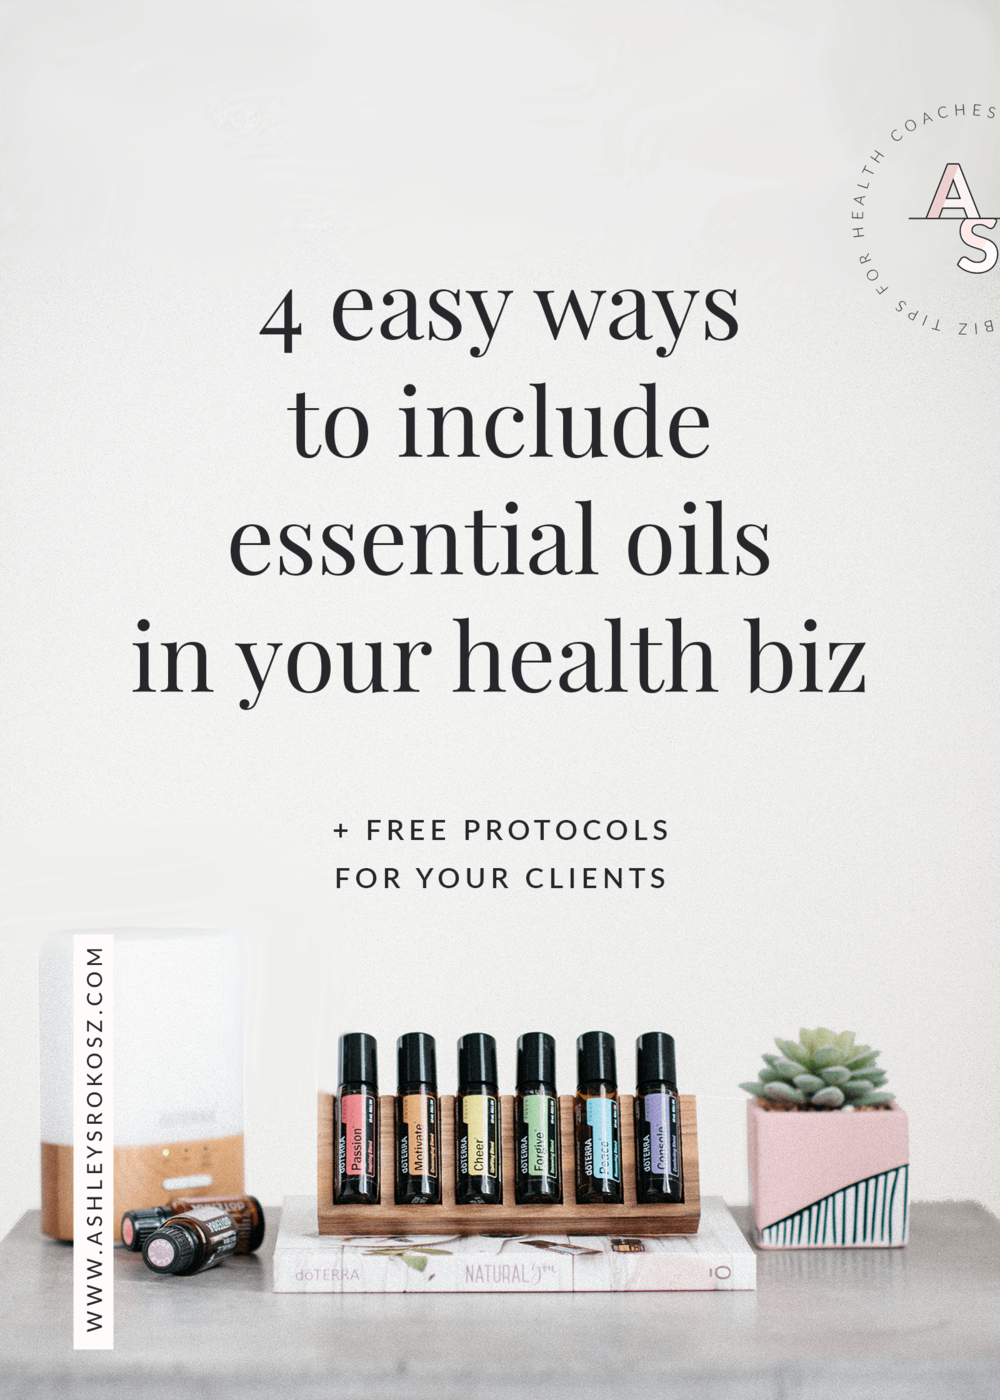 Have you thought about including essential oils in your health business to help create more income? Ashley Srokosz, Registered Holistic Nutritionist, shares 4 ways to easily and naturally include essential oils in your existing business using the secrets she's learned from sharing essential oils with 4,700+ families in 3 years. This is perfect for holistic nutritionists, health coaches, naturopaths, or yoga teachers! #essentialoils #healthcoachbusiness #nutritionbusiness #healthcoaching